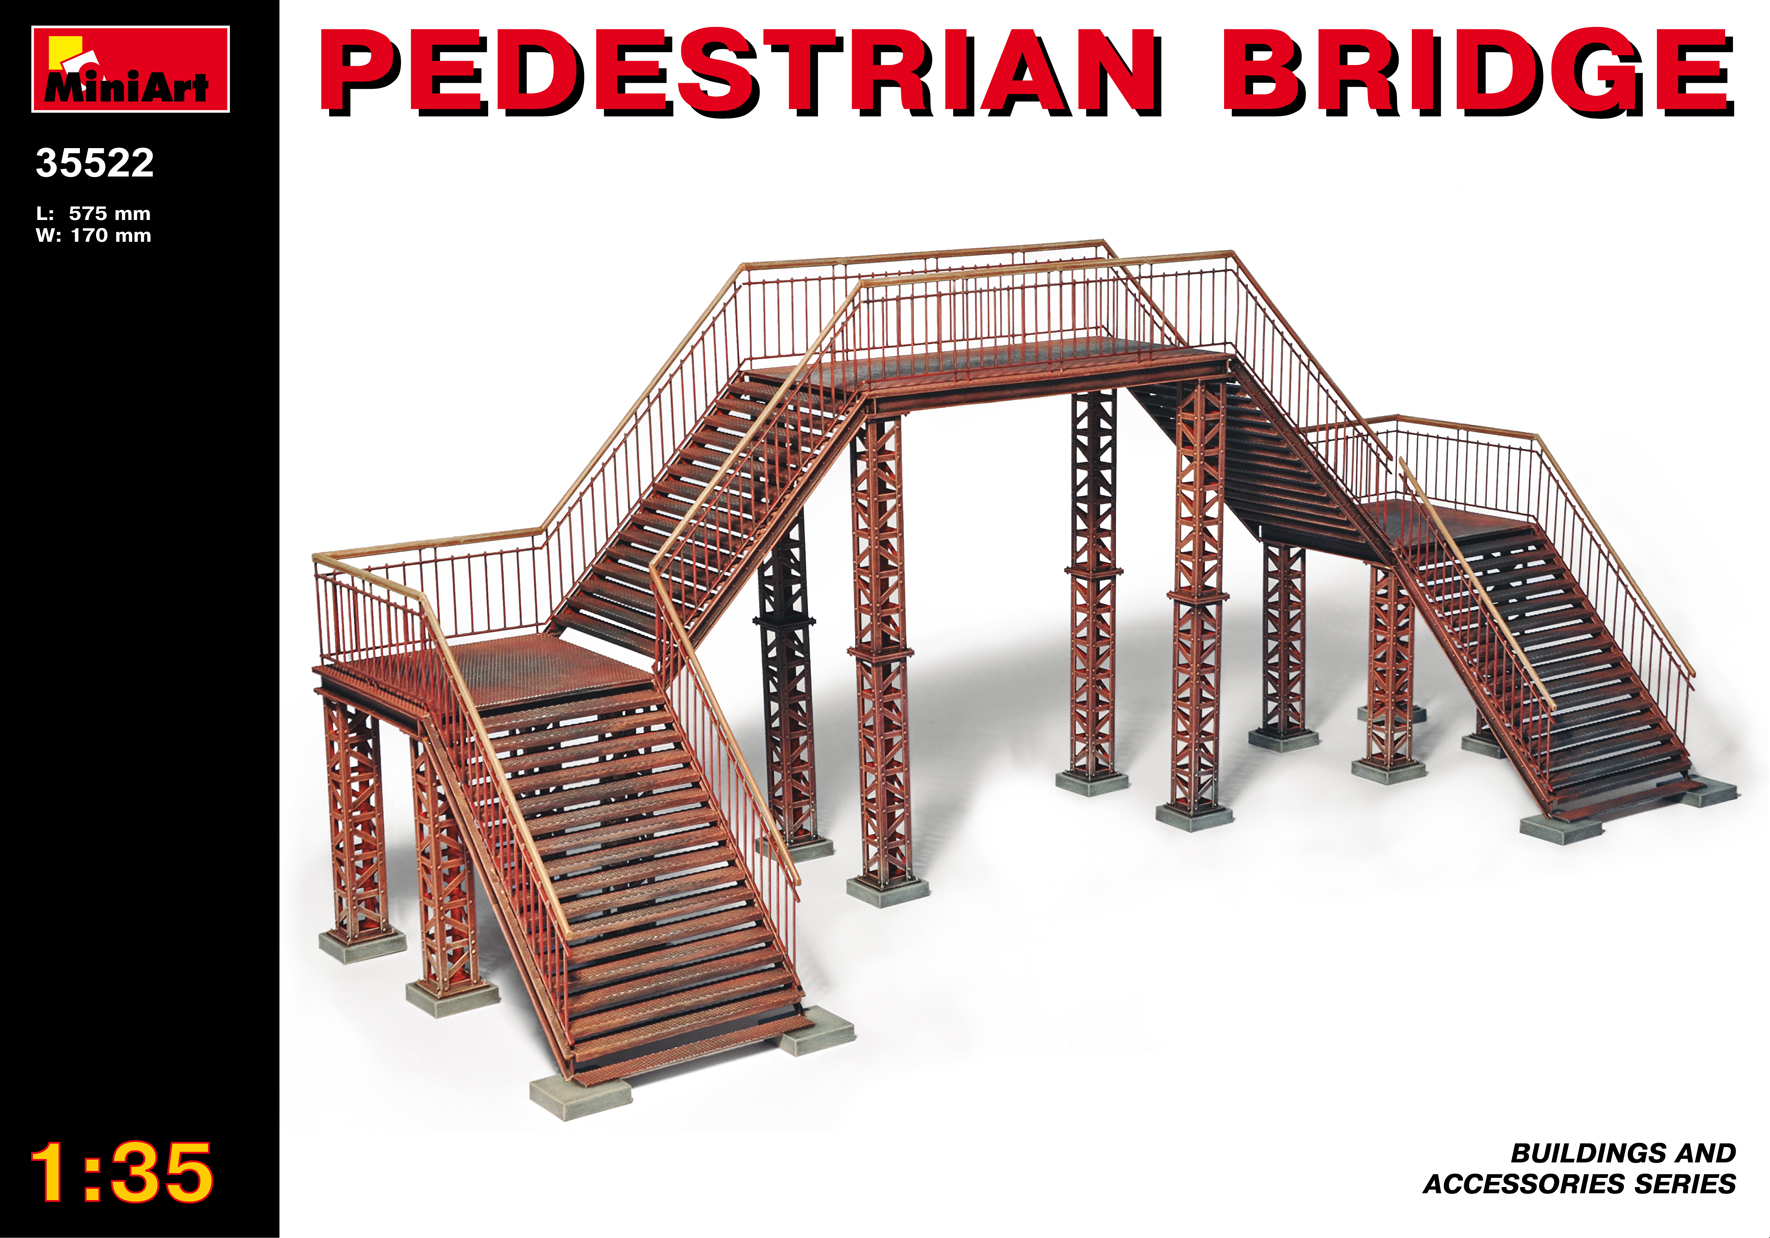 35522 PEDESTRIAN BRIDGE